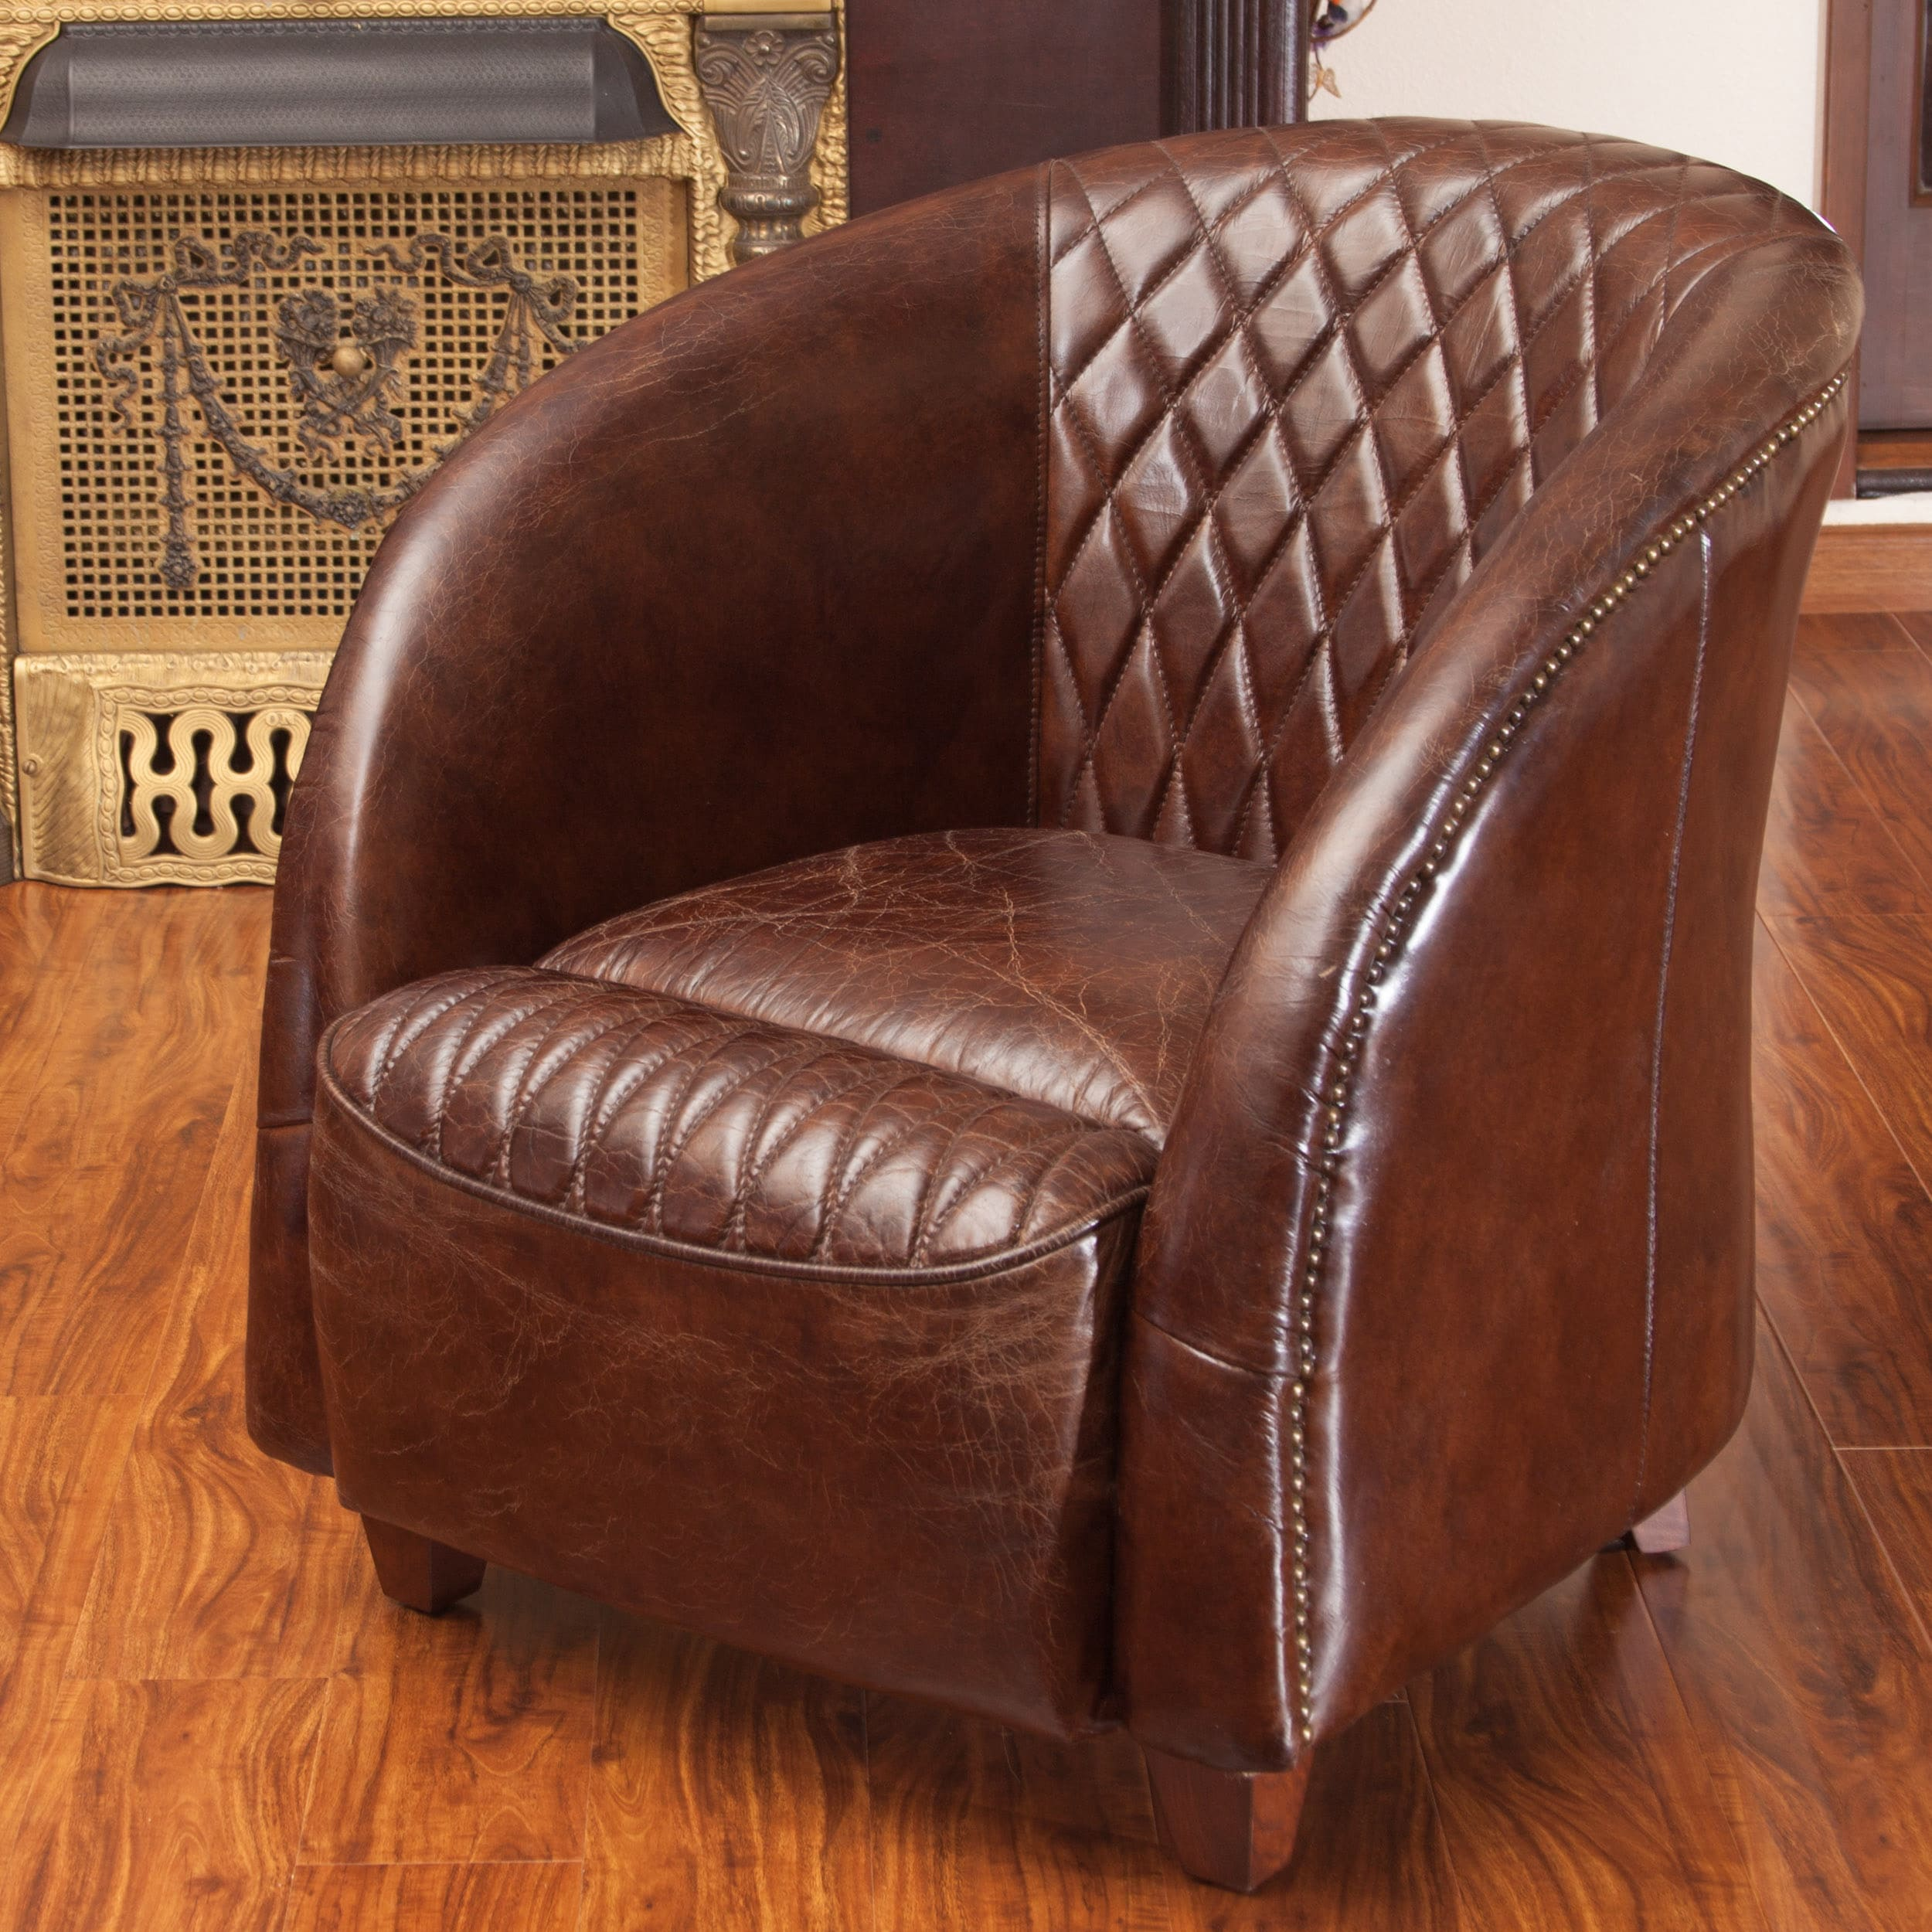 Rahim Brown Tufted Leather Club Chair By Christopher Knight Home Free Shipping Today 8283986